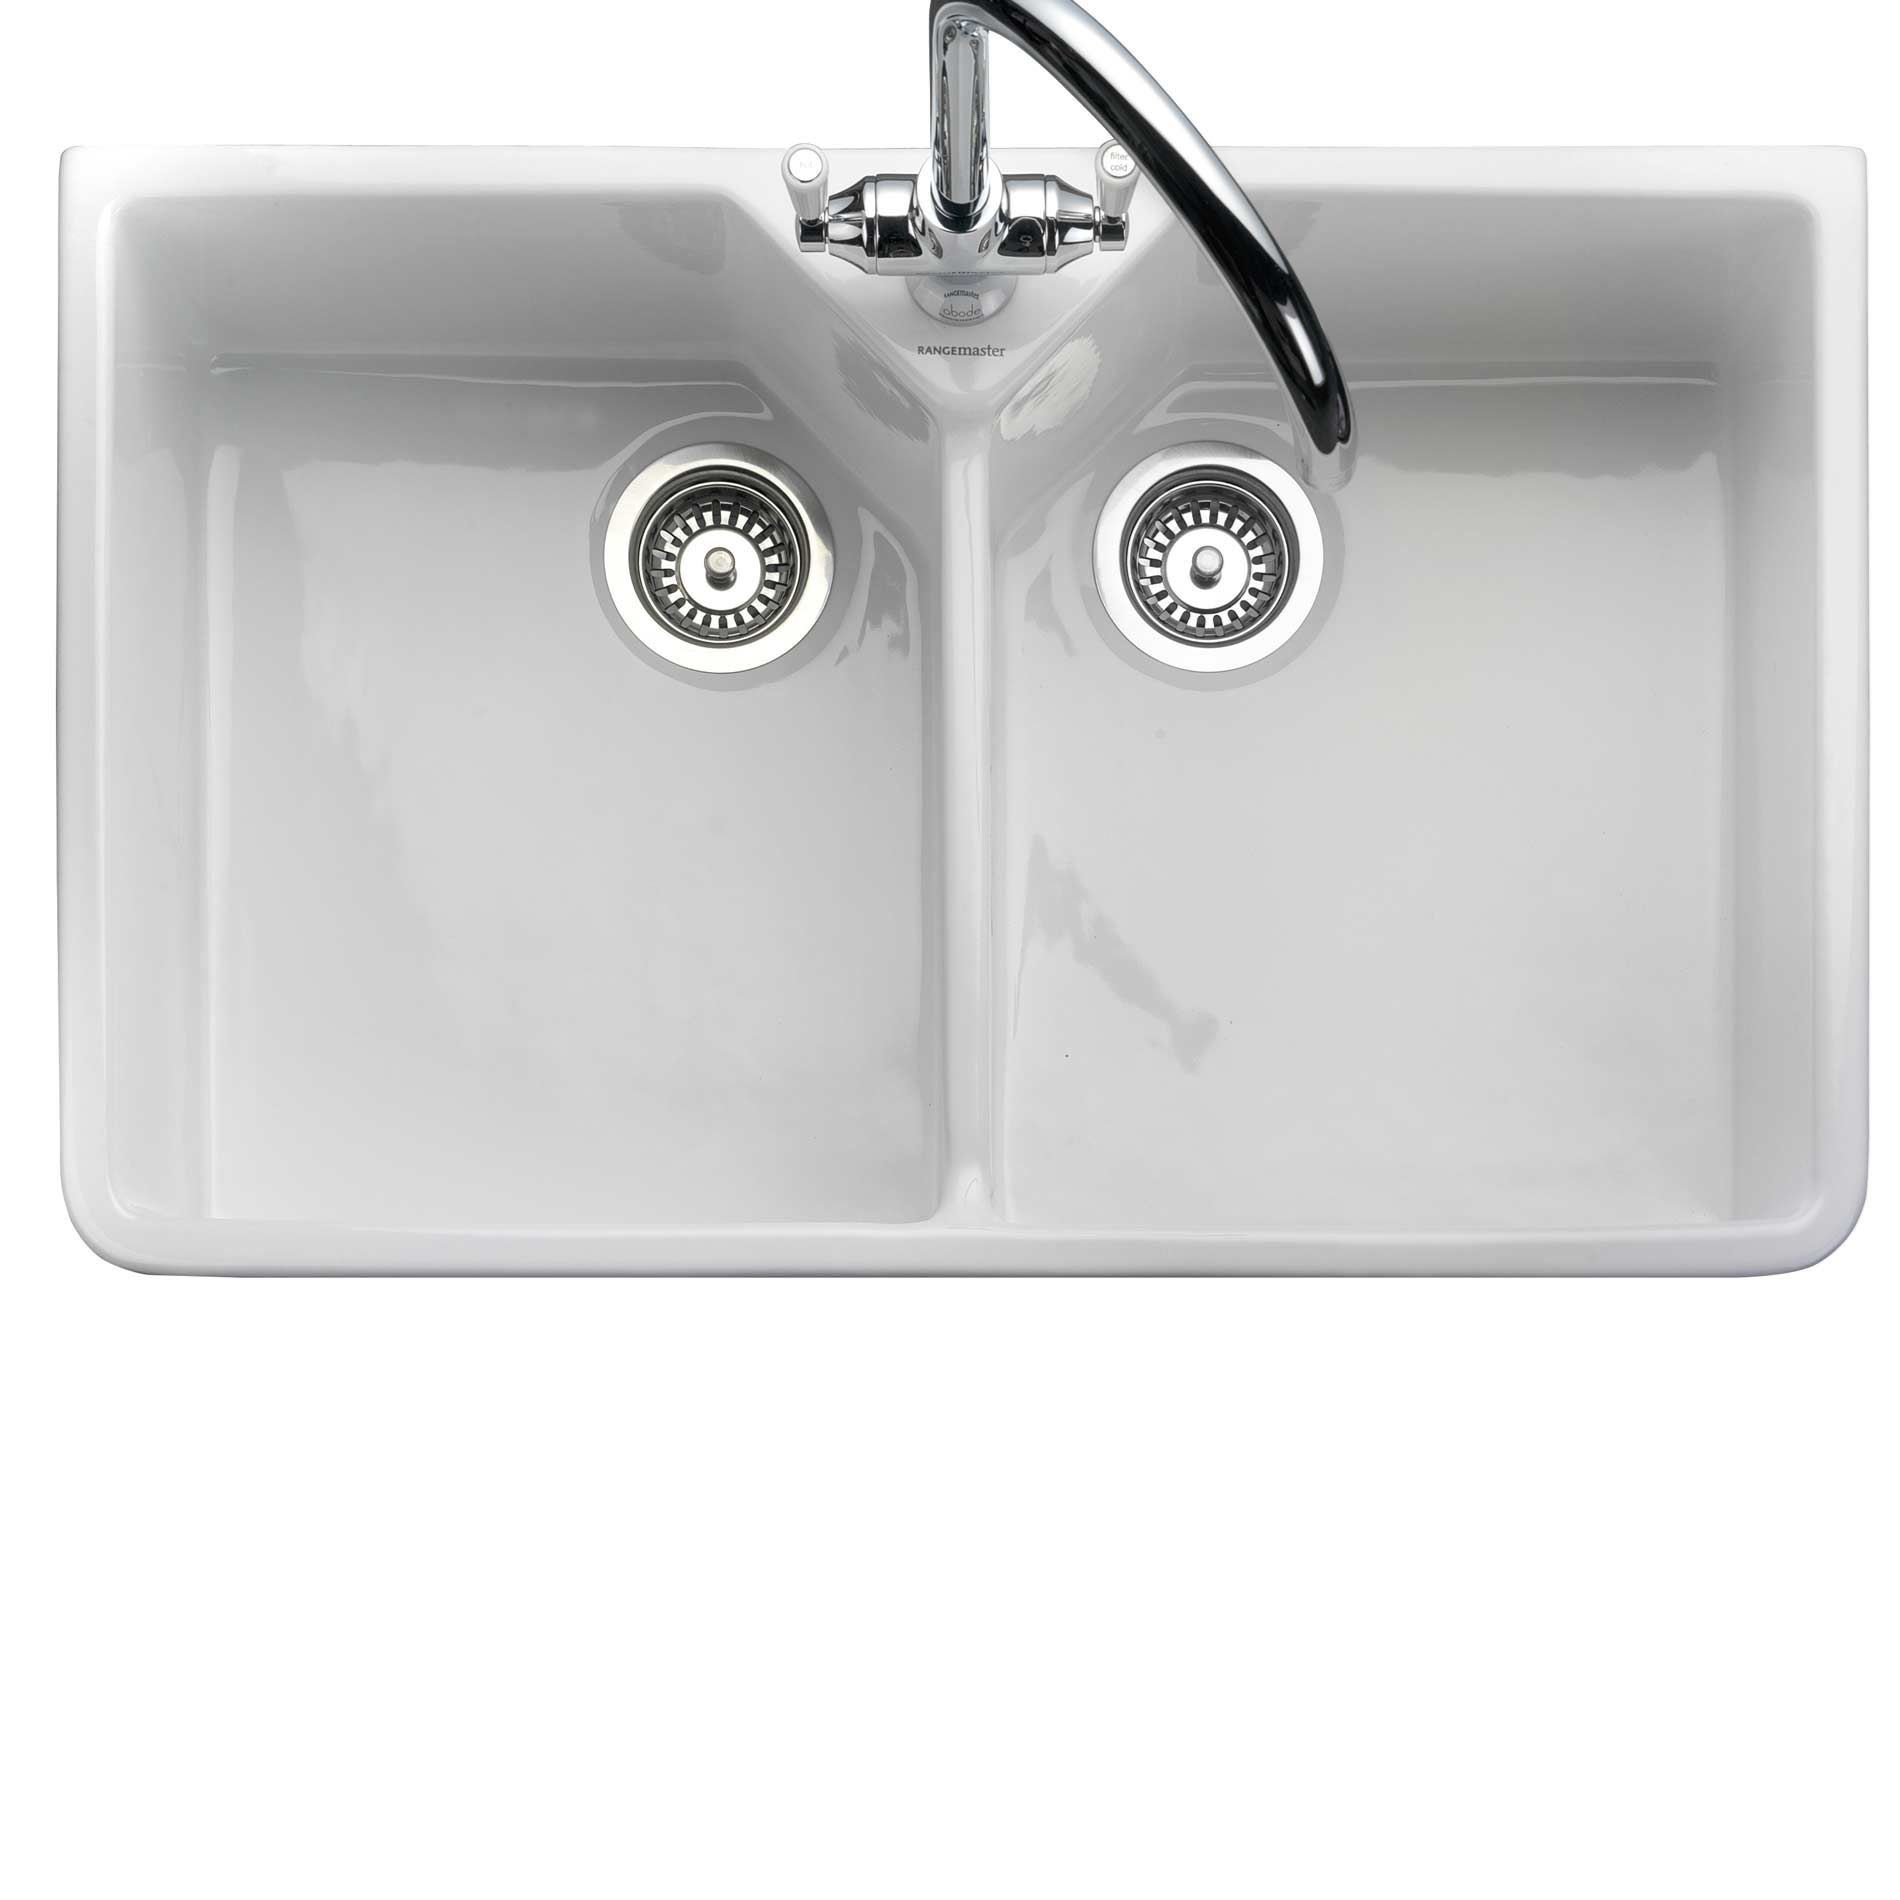 Rangemaster Kitchen Sinks Rangemaster double belfast cdb800wh ceramic sink kitchen sinks taps picture of double belfast cdb800wh ceramic sink workwithnaturefo